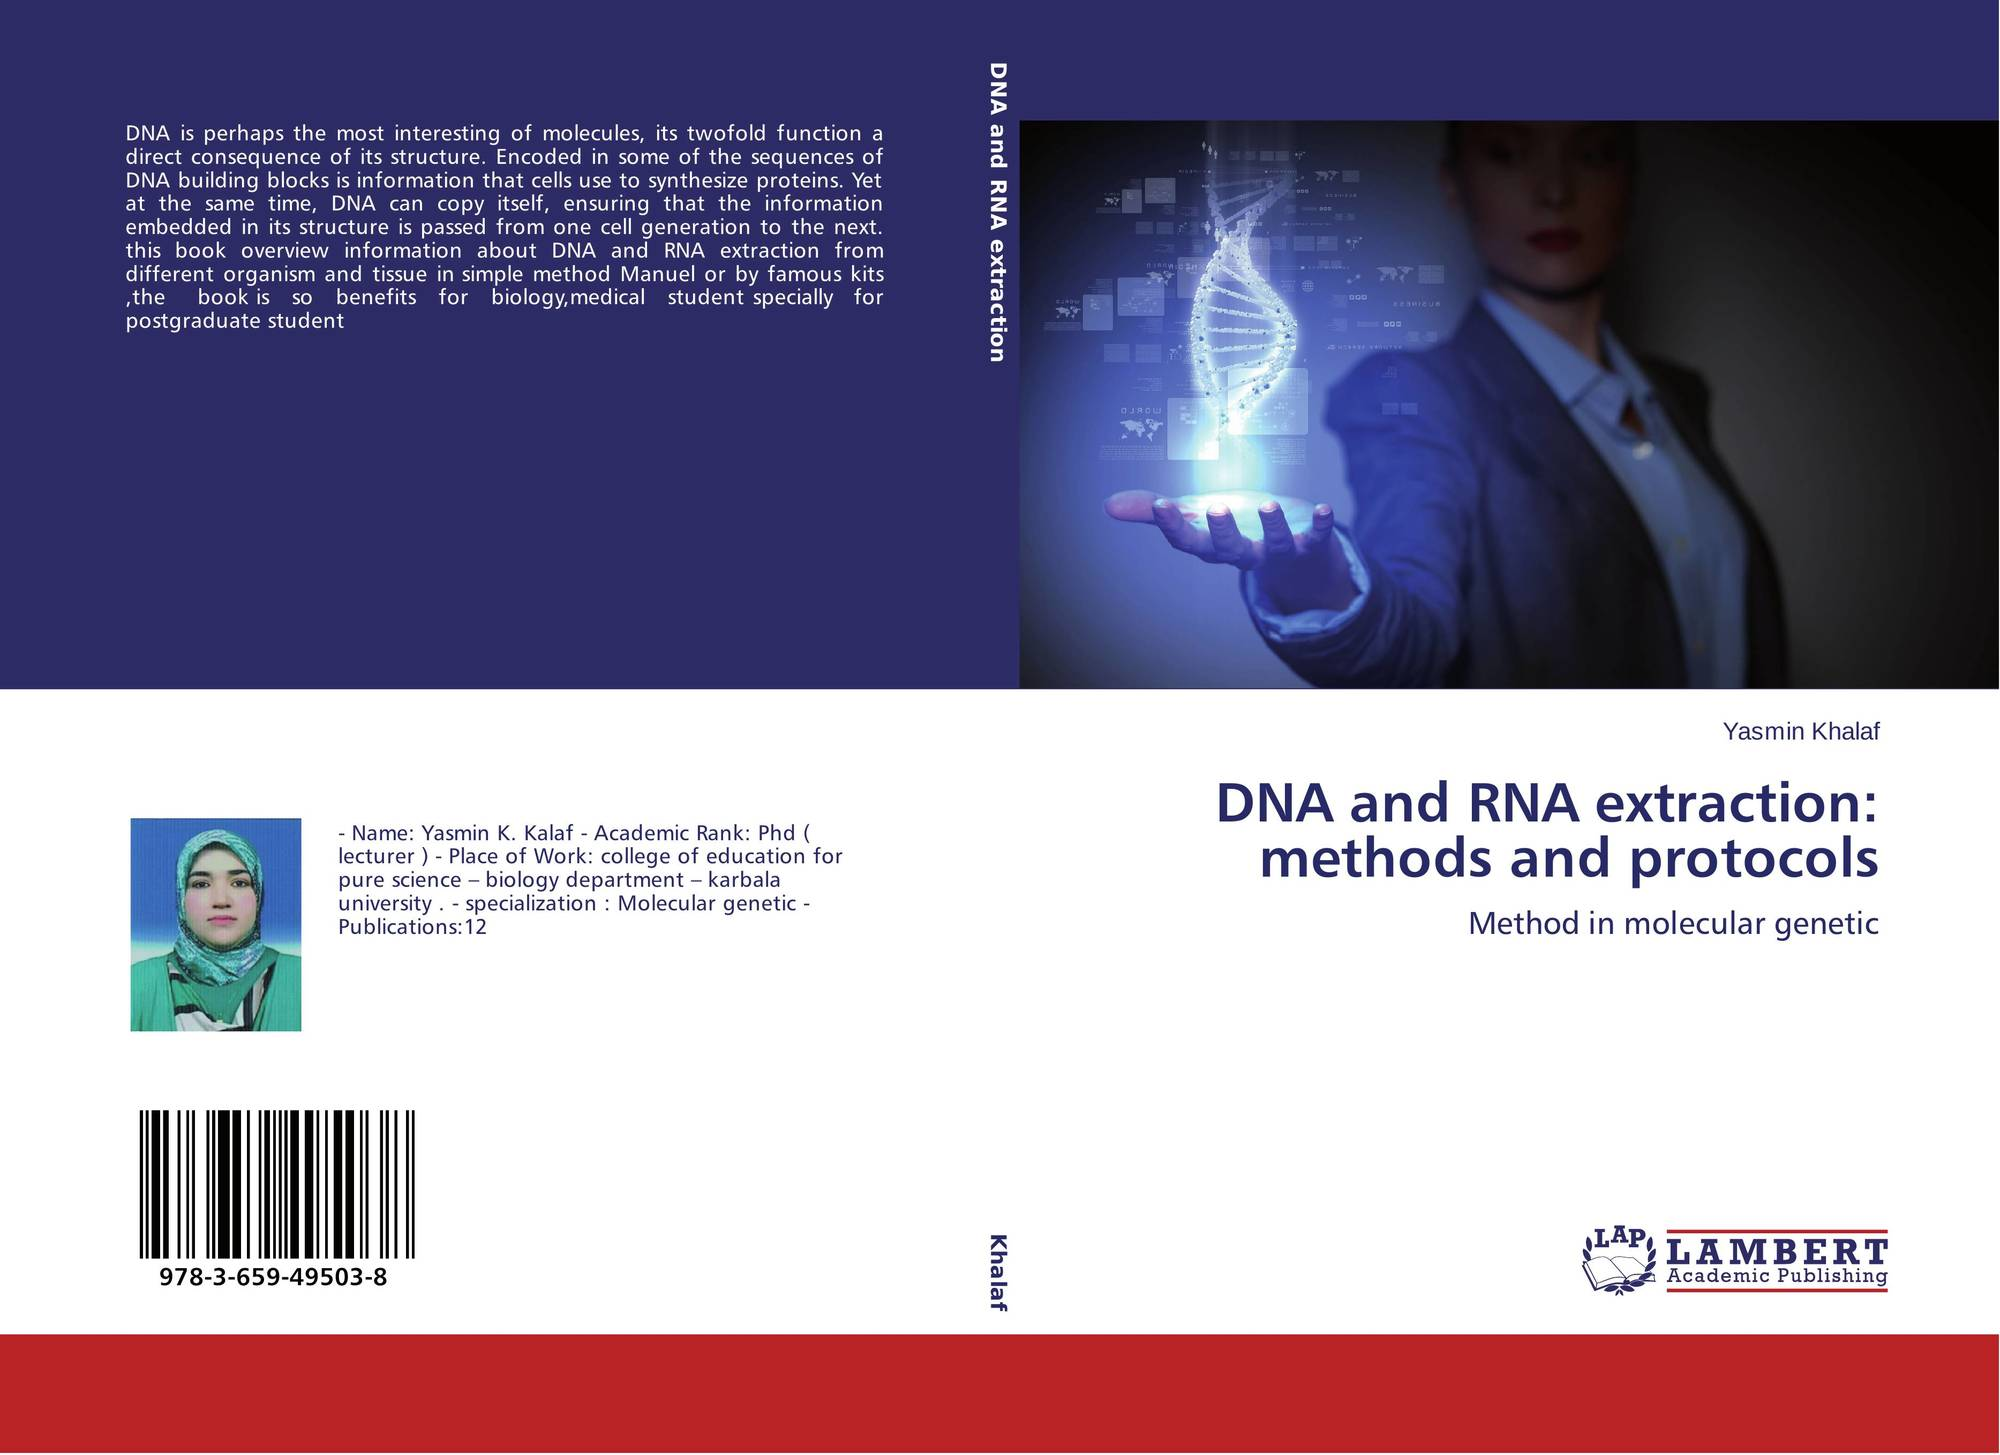 dna and rna extraction methods pdf